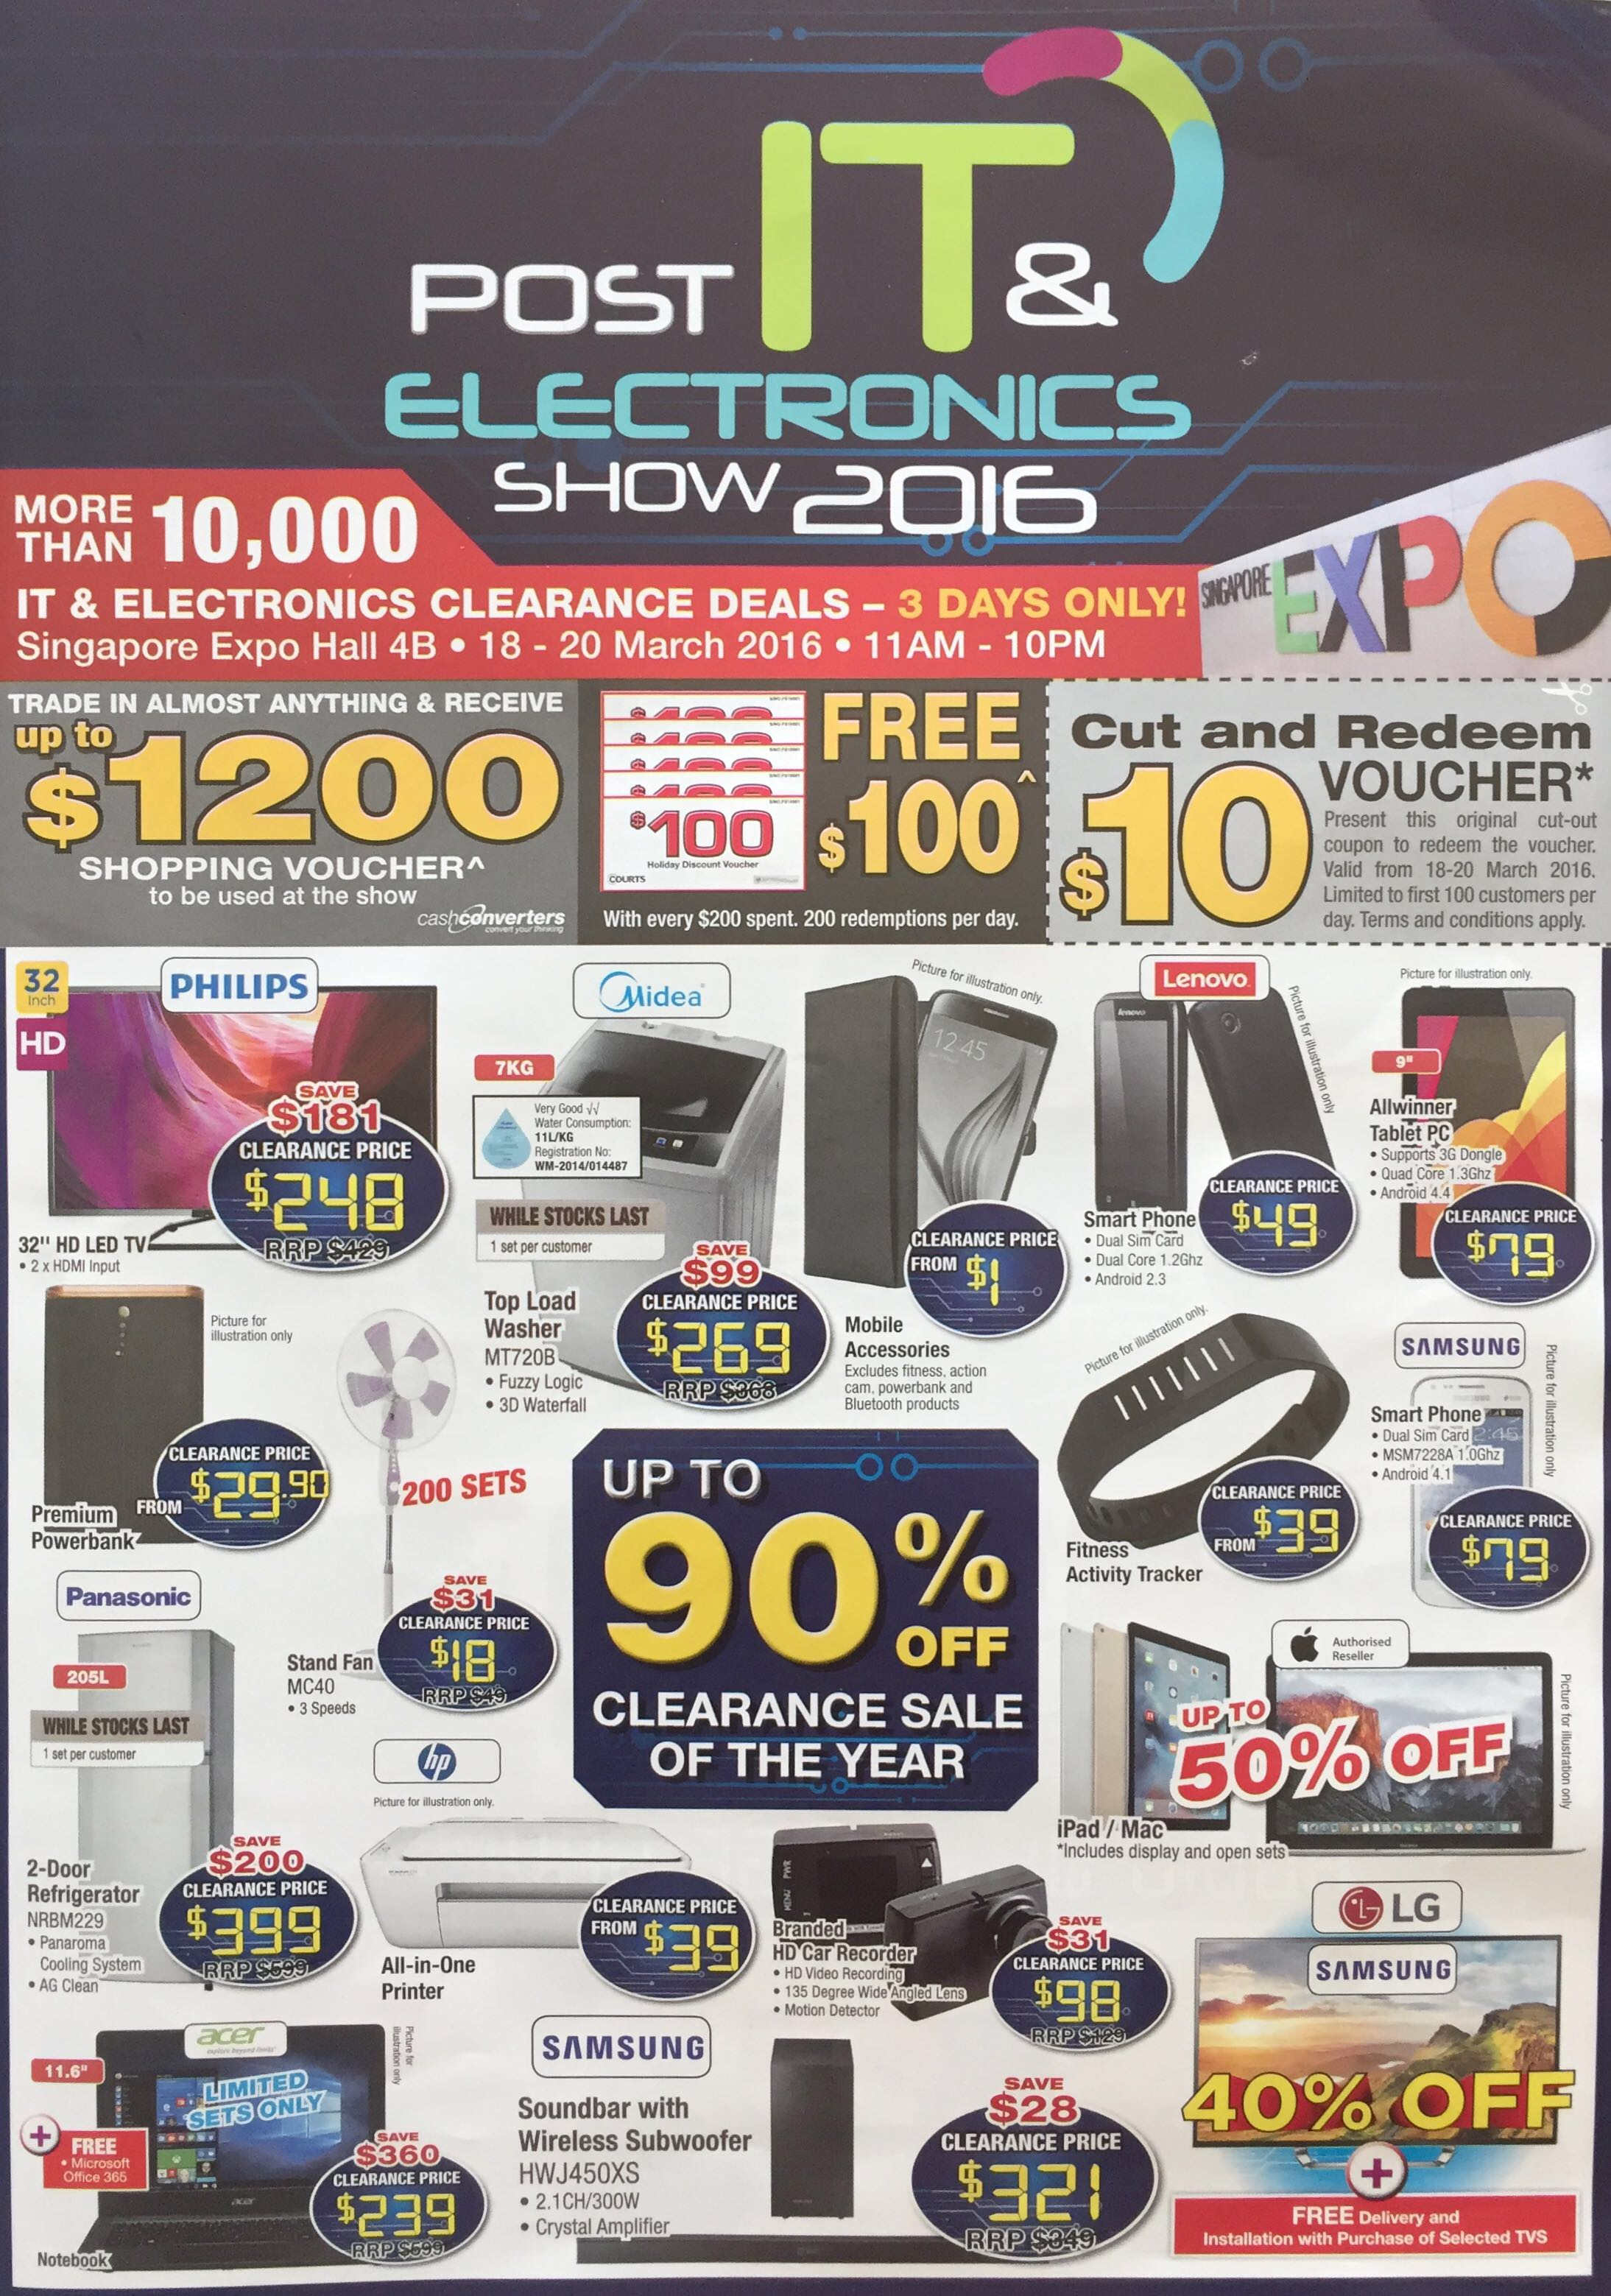 Post IT & Electronics Show 2016 | SINGAPORE Expo | 18-20 March 2016 | Page 1/4